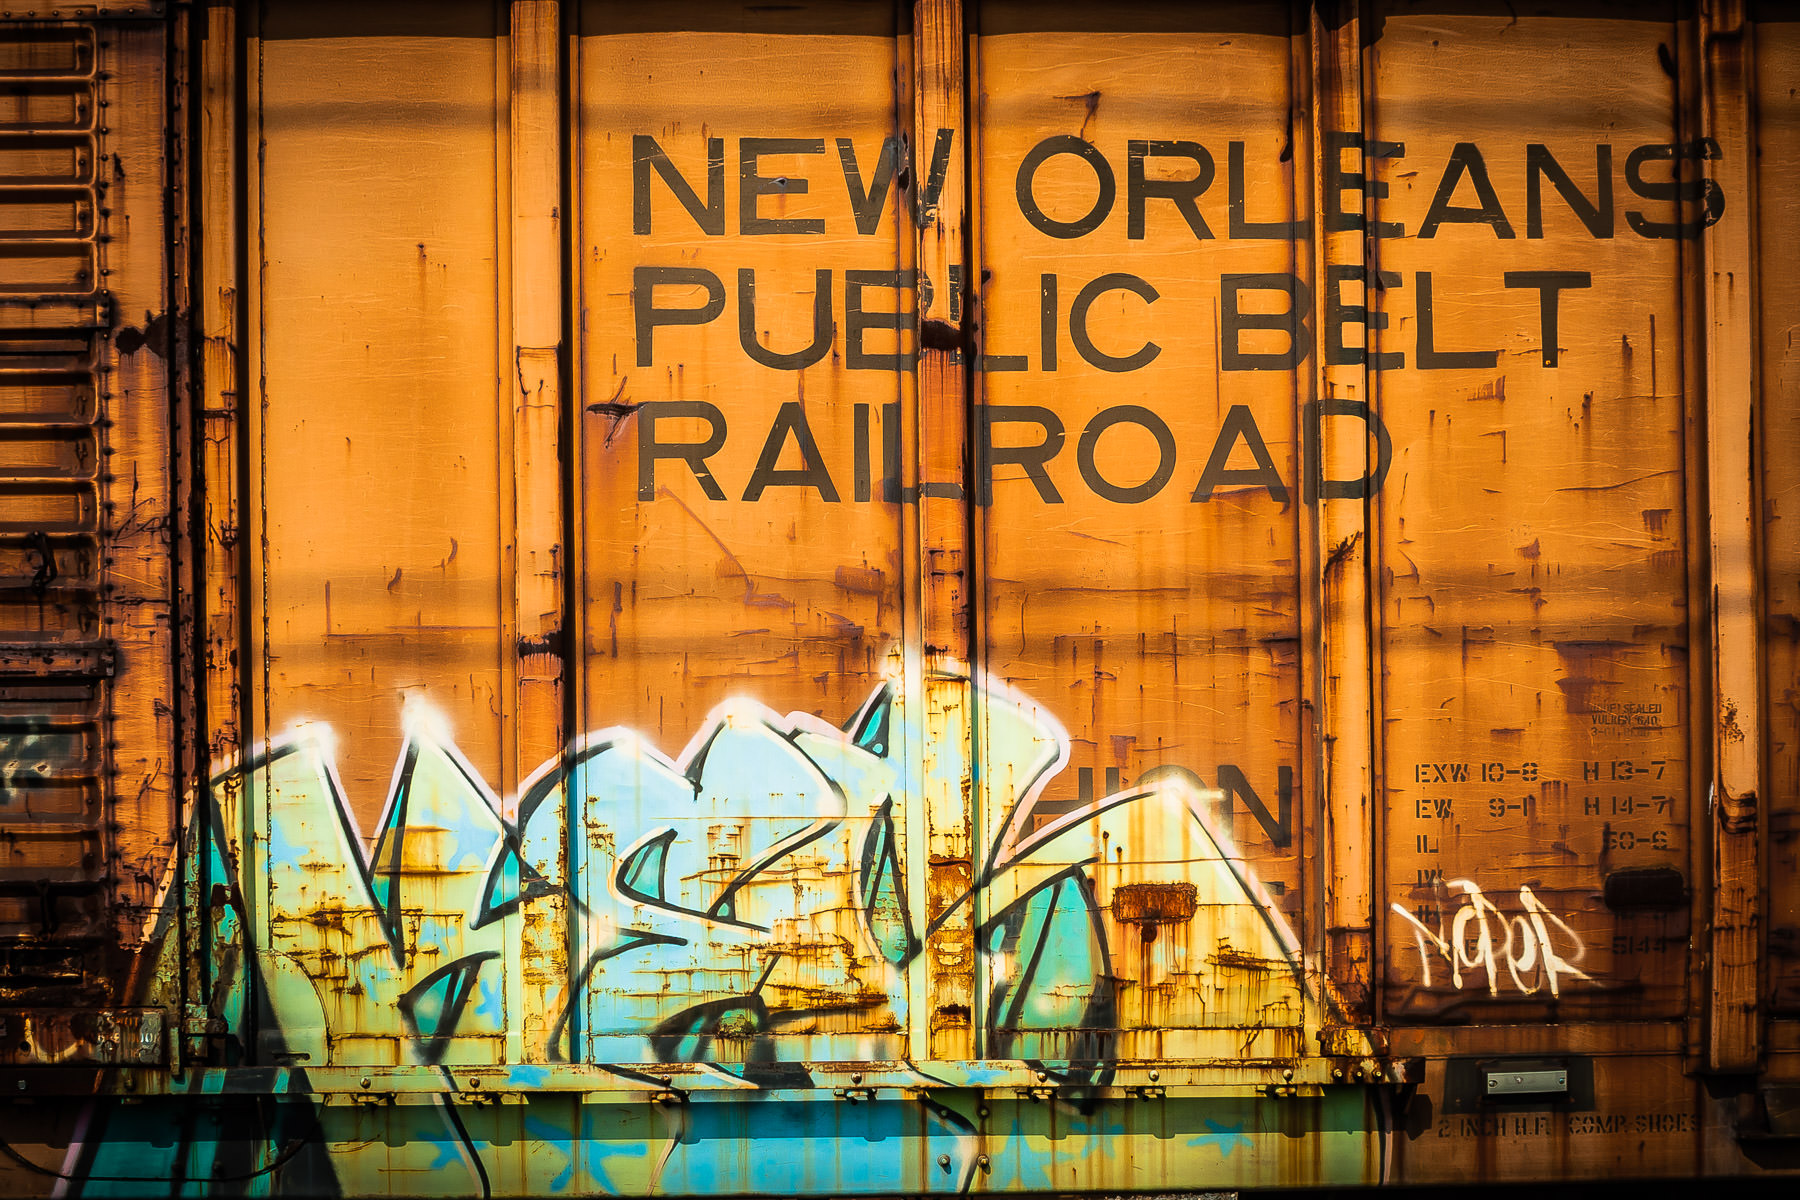 Graffiti on a New Orleans Public Belt Railroad boxcar, found on a rail siding in Farmers Branch, Texas.